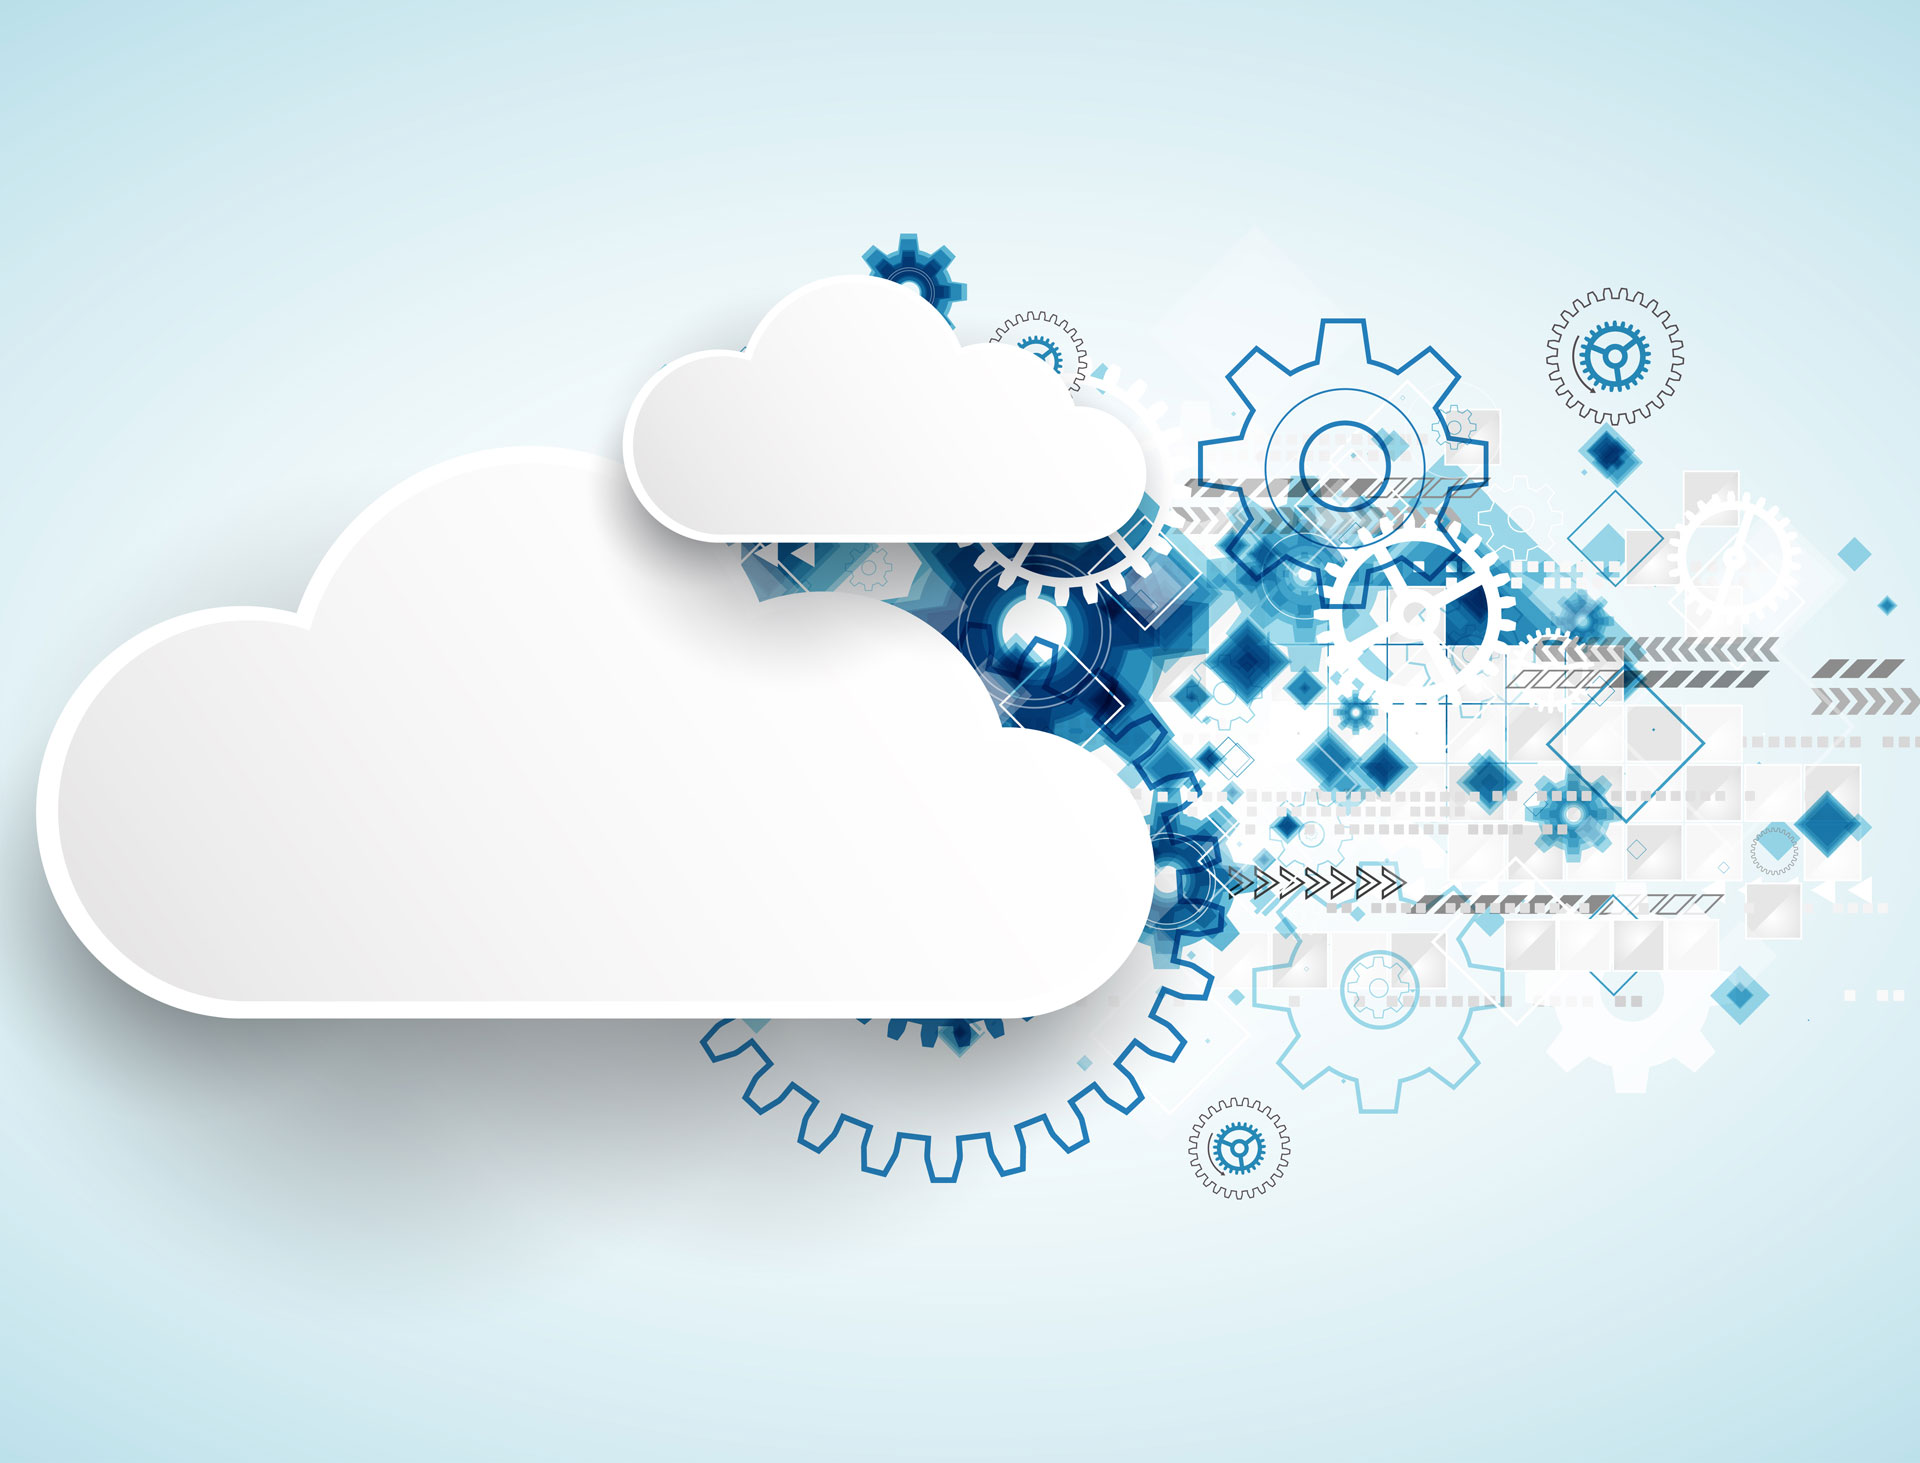 Infrastructure as a service market booms as public cloud embraced